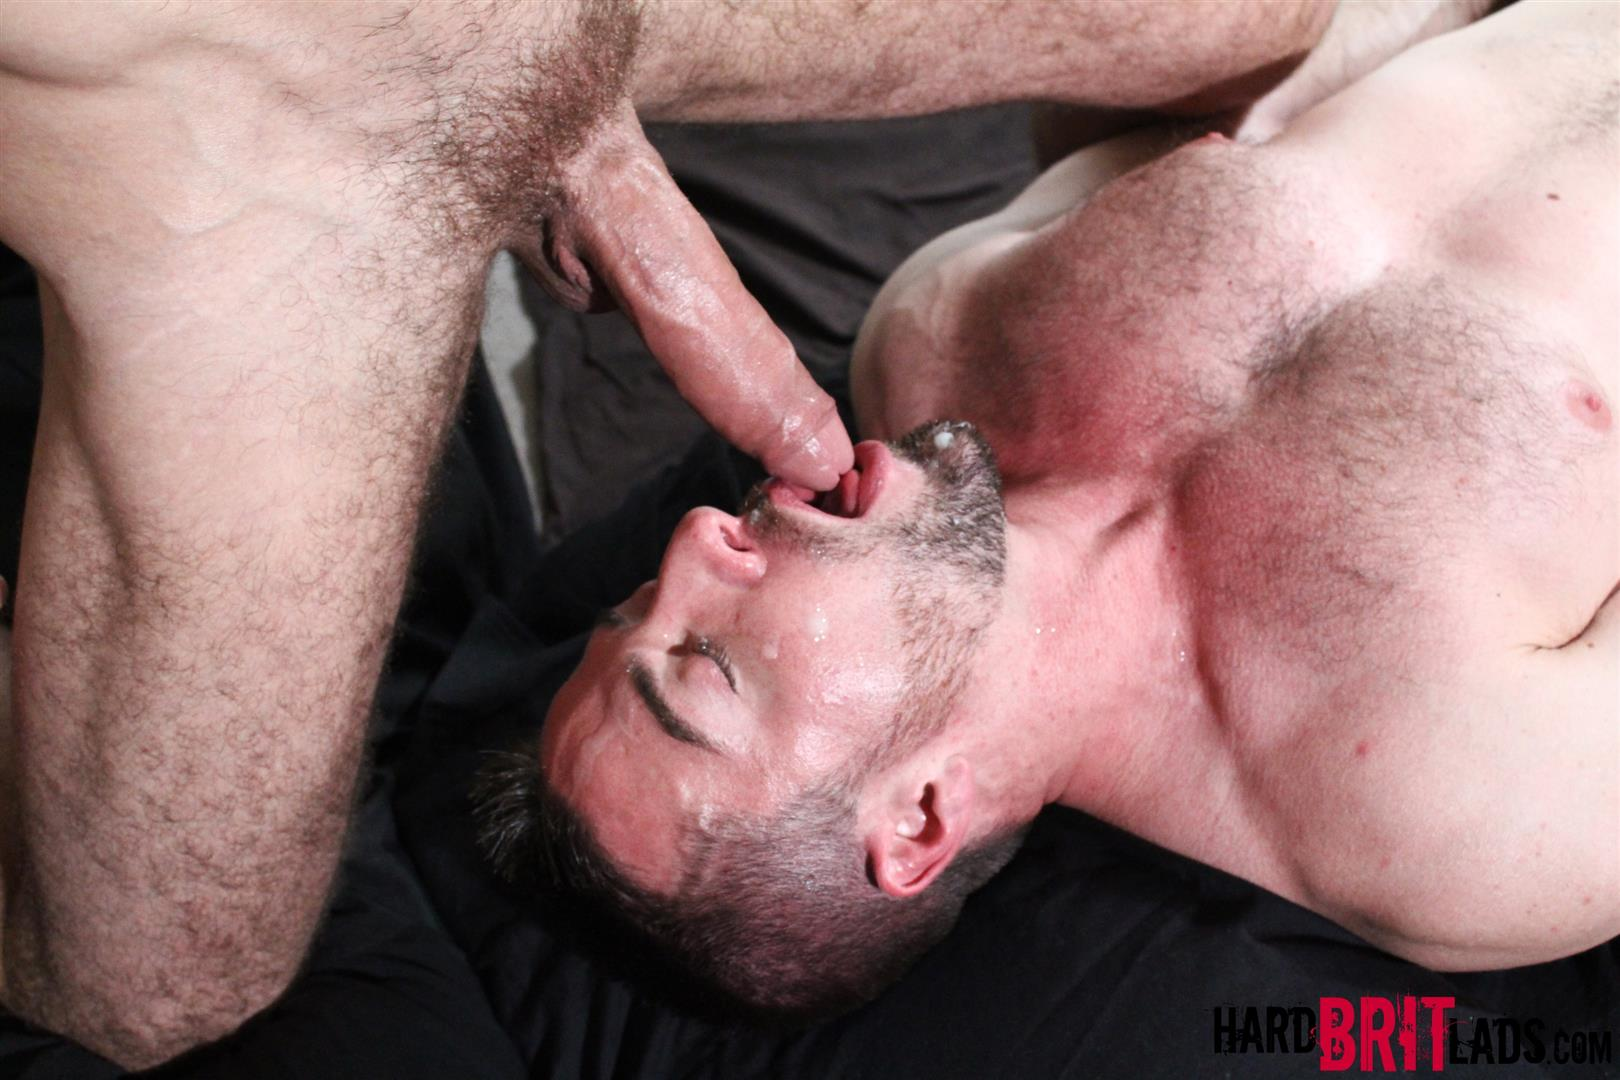 Hard-Brit-Lads-Craig-Daniel-Scott-Hunter-Hairy-Muscle-Hunks-With-Big-Uncut-Cocks-Fucking-Amateur-Gay-Porn-21 Hairy Muscle Hunks Fucking And Eating Cum From Big Uncut Cocks